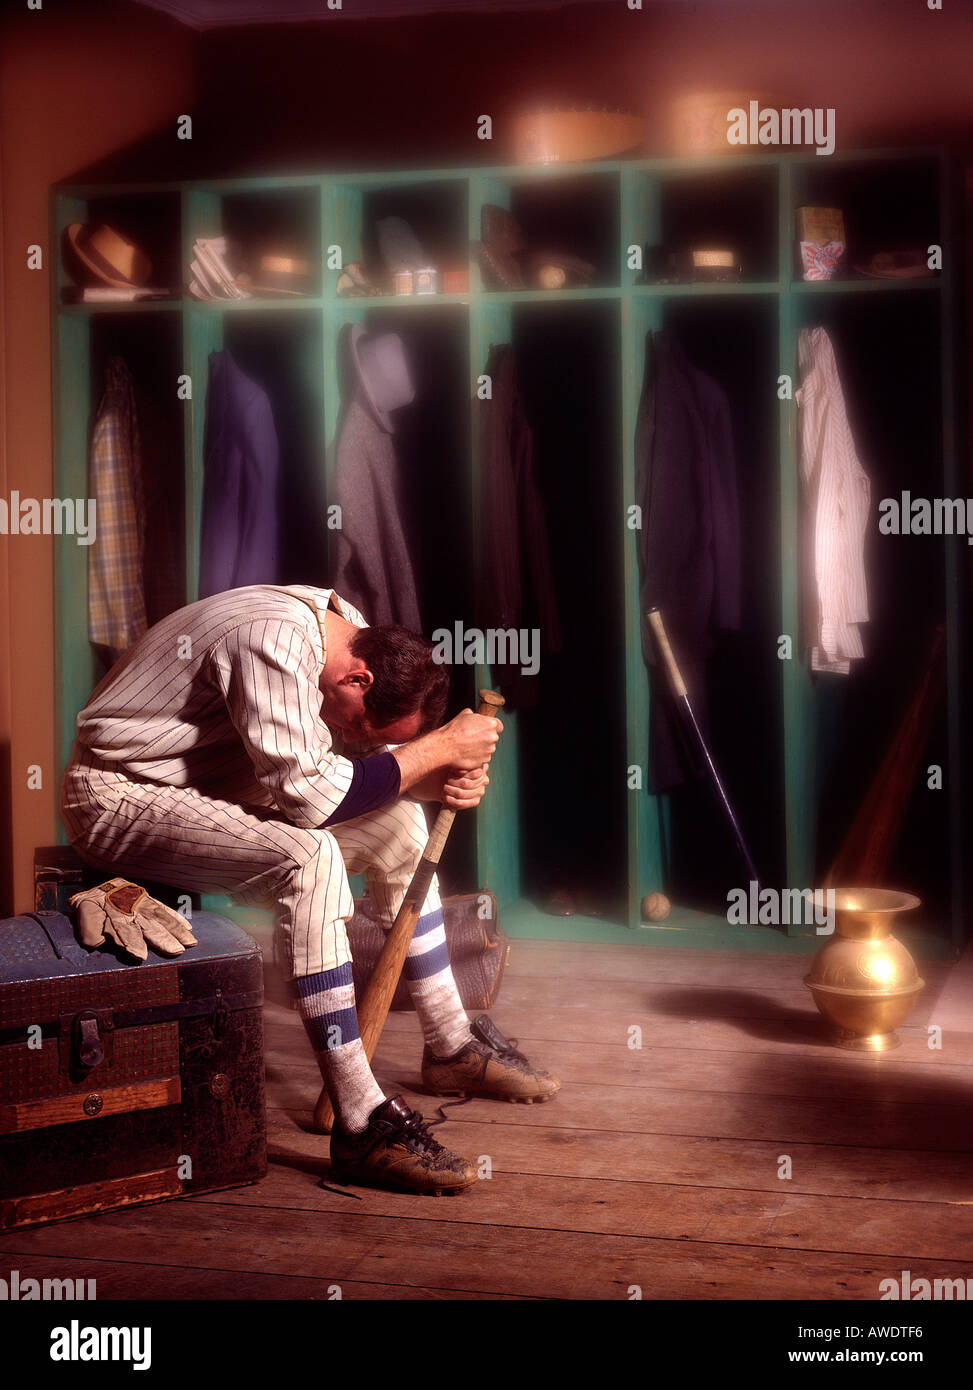 Baseball Player Old Fashion Unifrom Locker Room Spitoon Mystery Fantasy Editorial